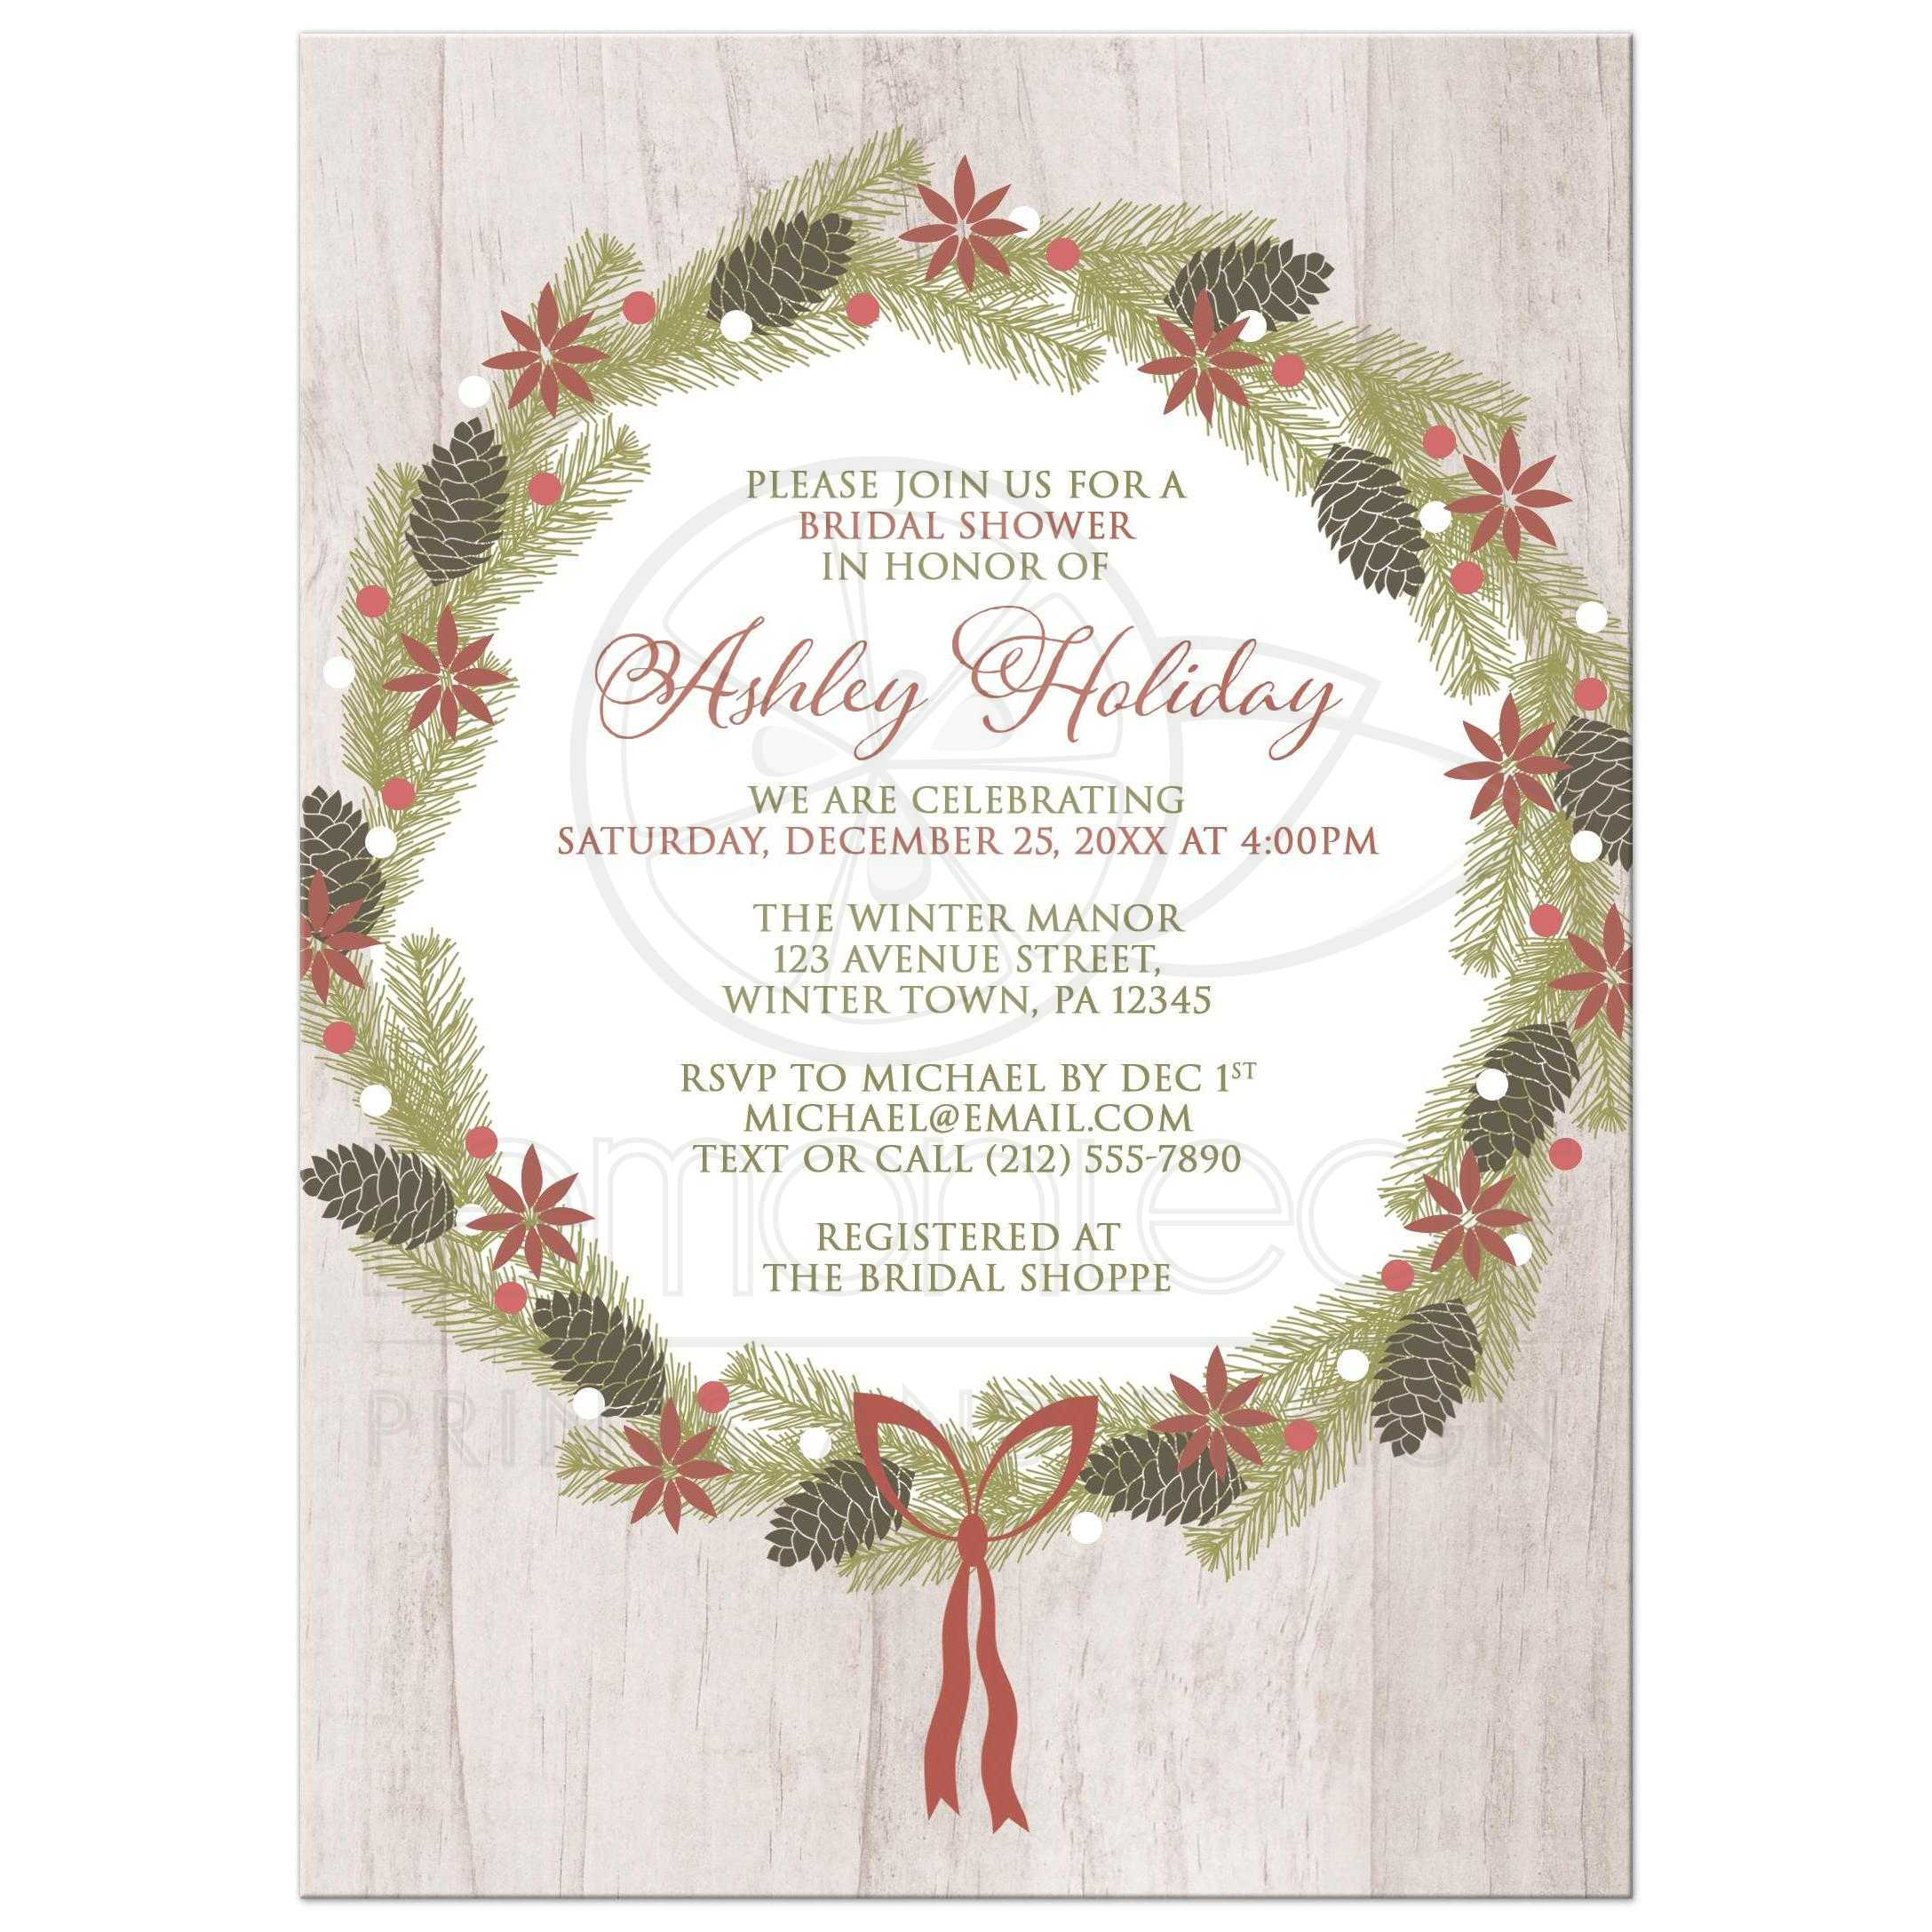 Bridal Shower Invitations And Recipe Cards